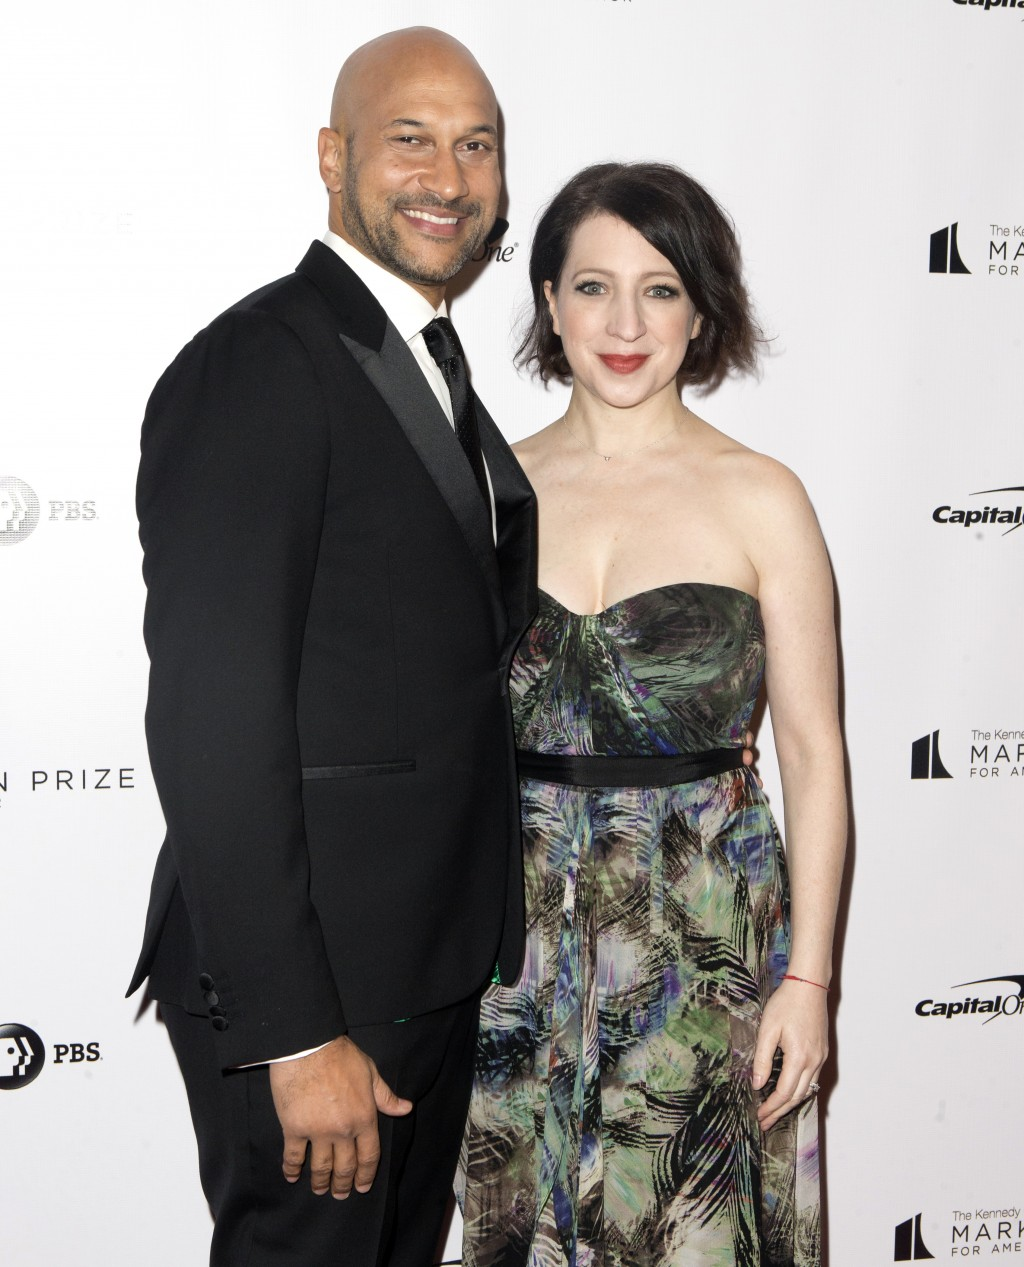 Keegan-Michael Key and his wife, Elisa Pugliese, arrive at the Kennedy Center for the Performing Arts for the 21st Annual Mark Twain Prize for America